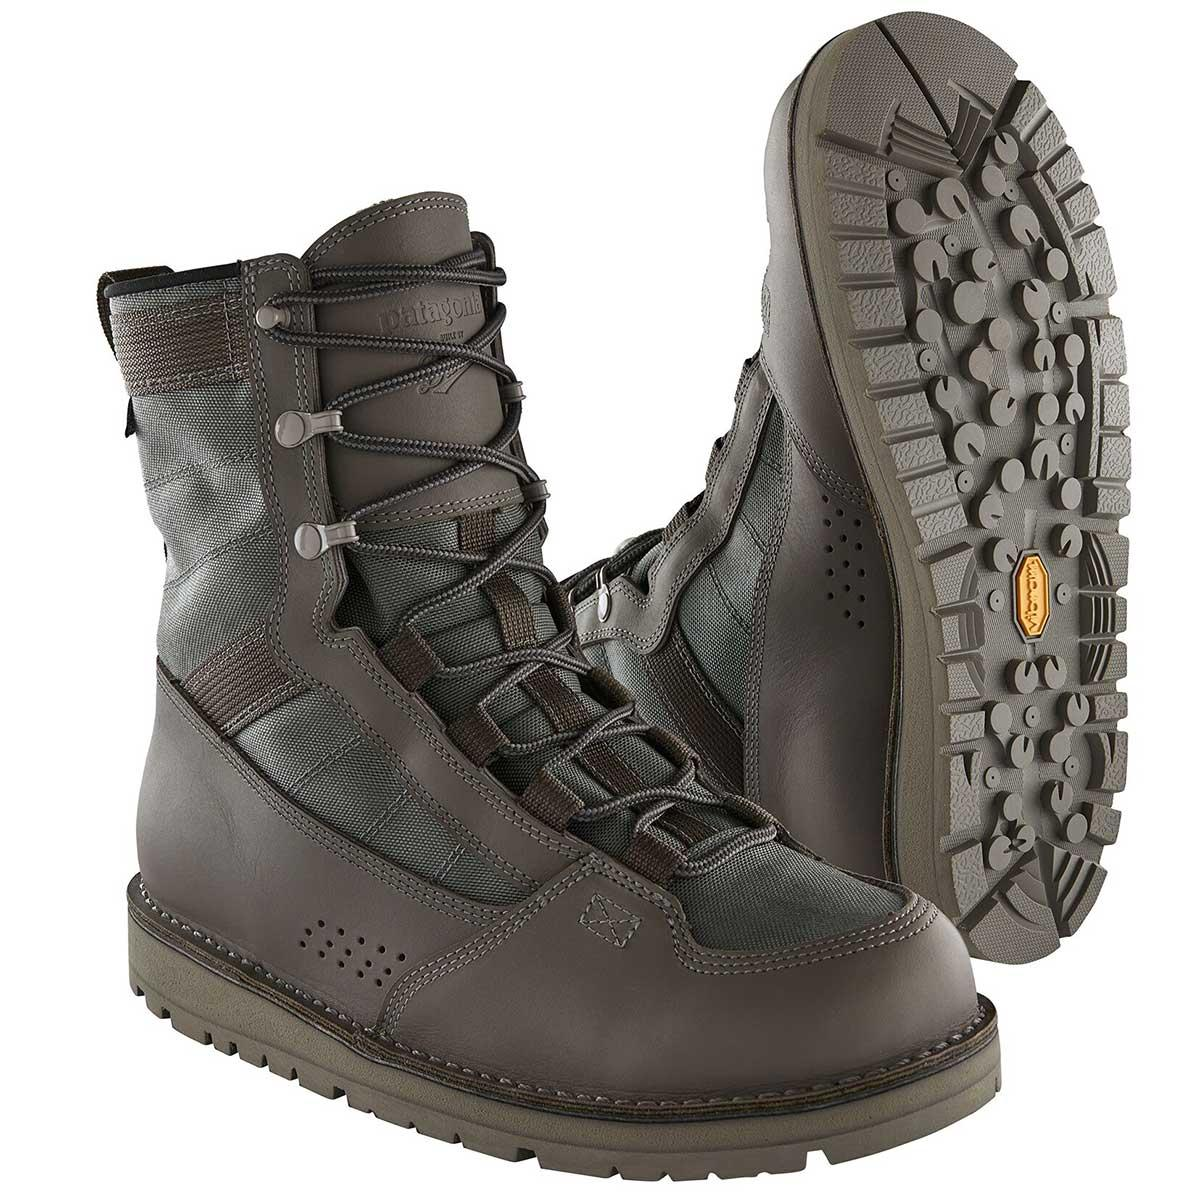 Patagonia River Salt Wading Boots in Feather Grey main view